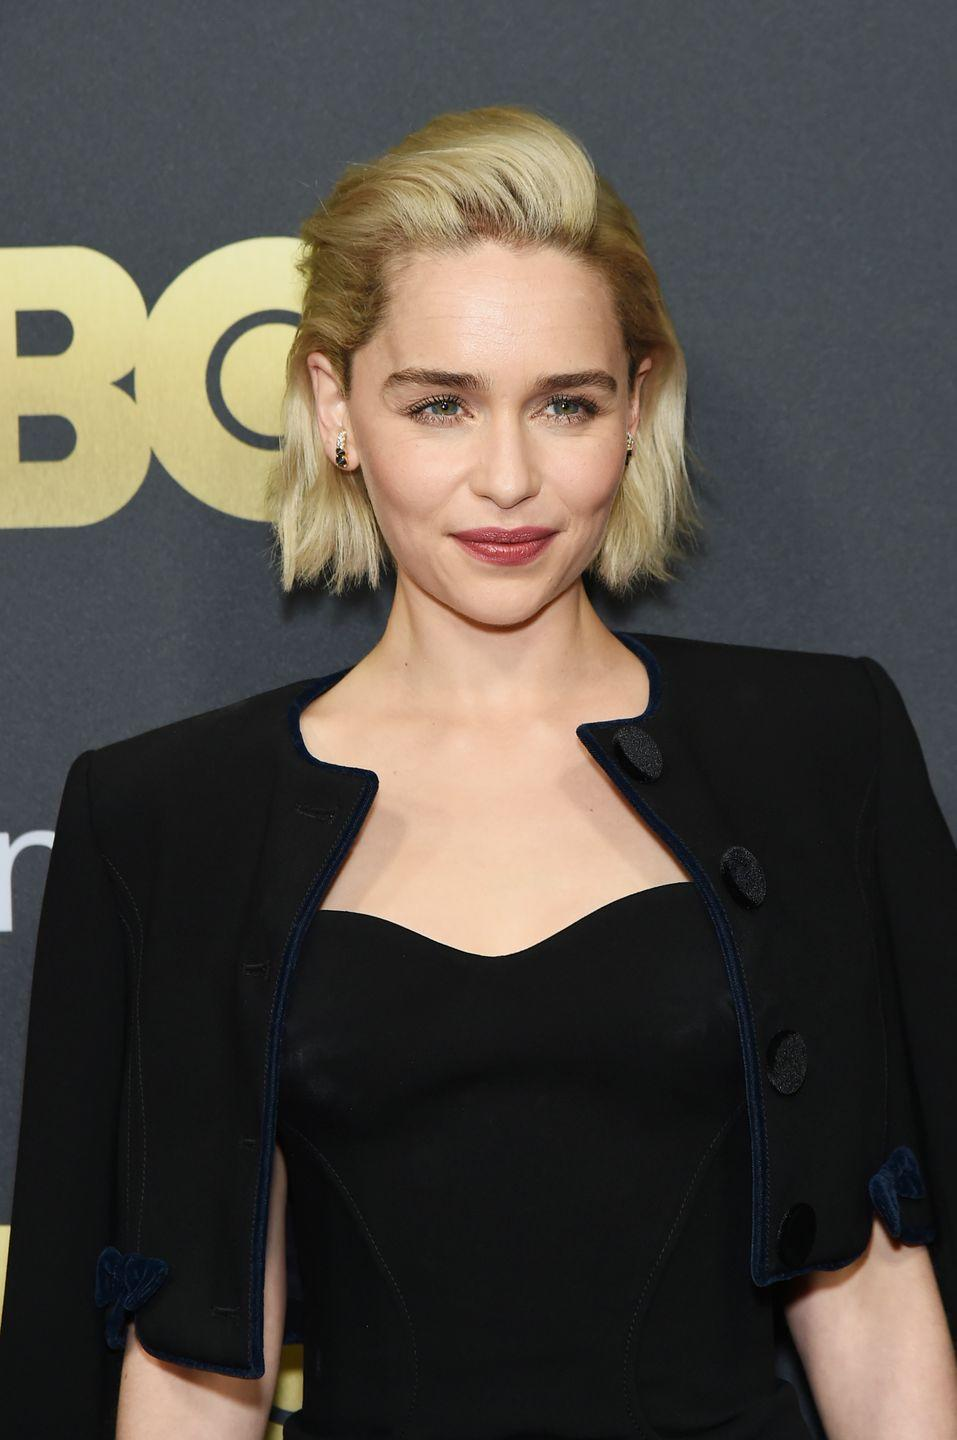 "<p>The natural brunette dyed her hair platinum blonde when filming the final season of <em>Game of Thrones</em>. The actress's hair was so <a href=""https://www.glamour.com/story/emilia-clarke-game-of-thrones-hair?verso=true"" rel=""nofollow noopener"" target=""_blank"" data-ylk=""slk:damaged after the series finished"" class=""link rapid-noclick-resp"">damaged after the series finished</a> that she <a href=""https://www.instagram.com/p/BZOViualnb7/?utm_source=ig_embed"" rel=""nofollow noopener"" target=""_blank"" data-ylk=""slk:chopped it off"" class=""link rapid-noclick-resp"">chopped it off</a>.</p>"